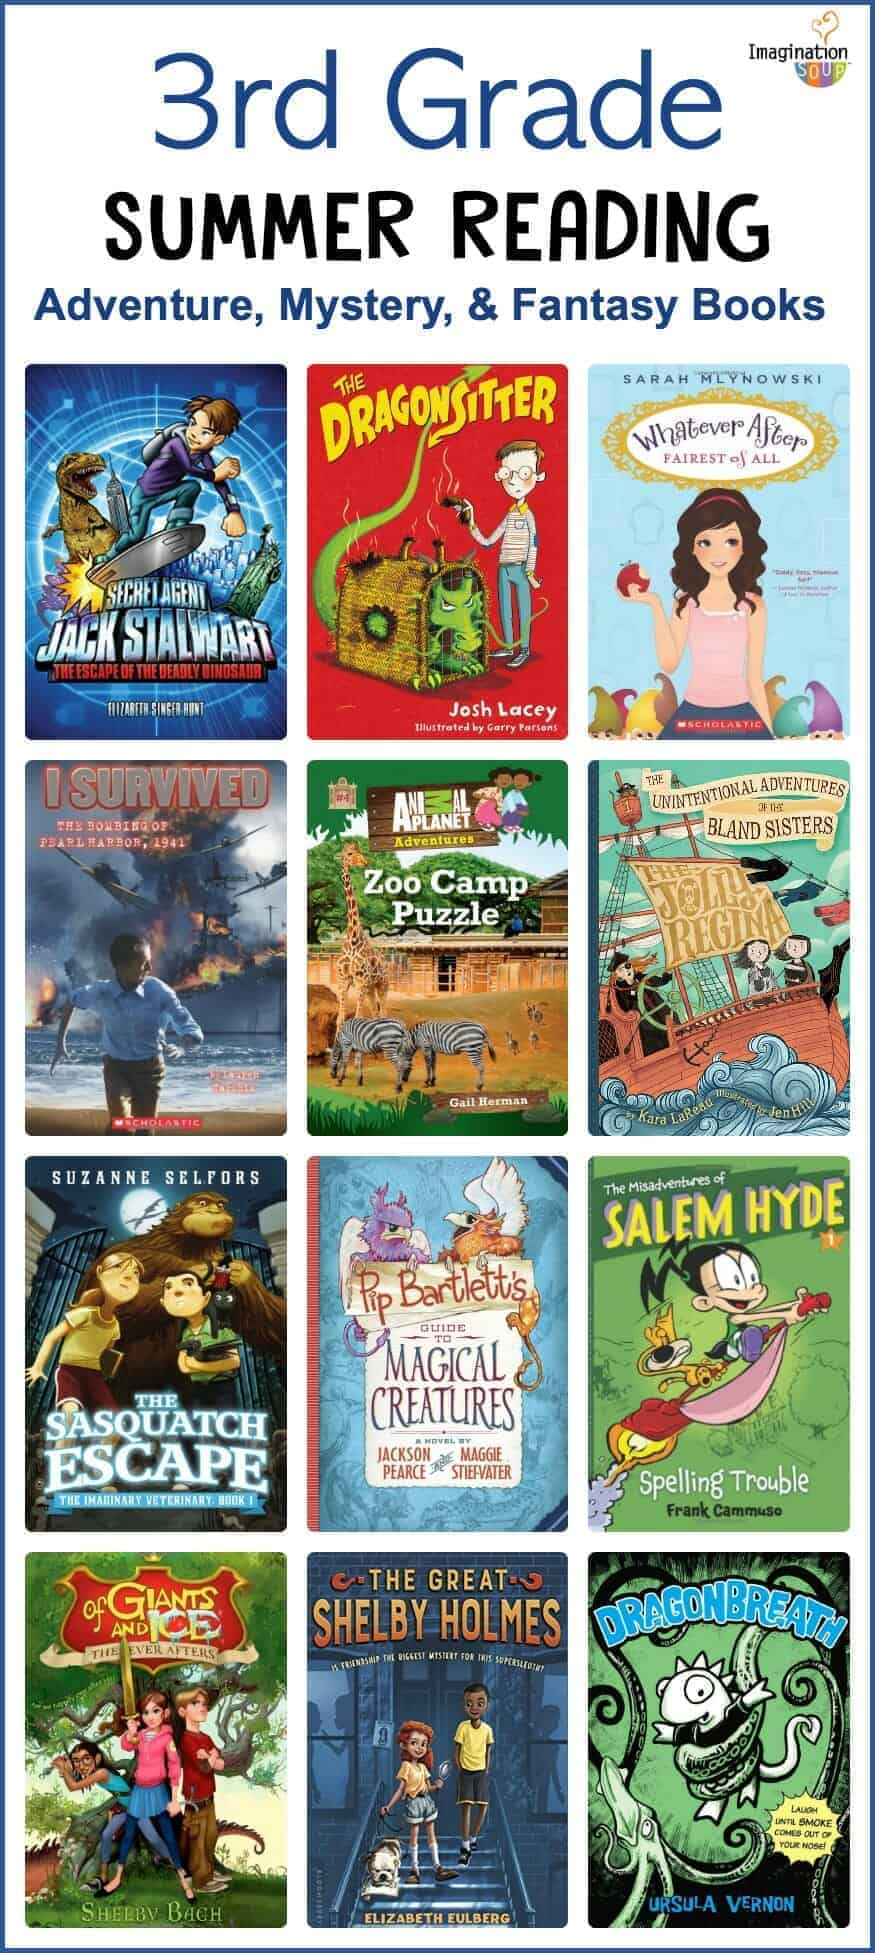 3rd Grade Summer Reading List (Ages 8 - 9) printable list